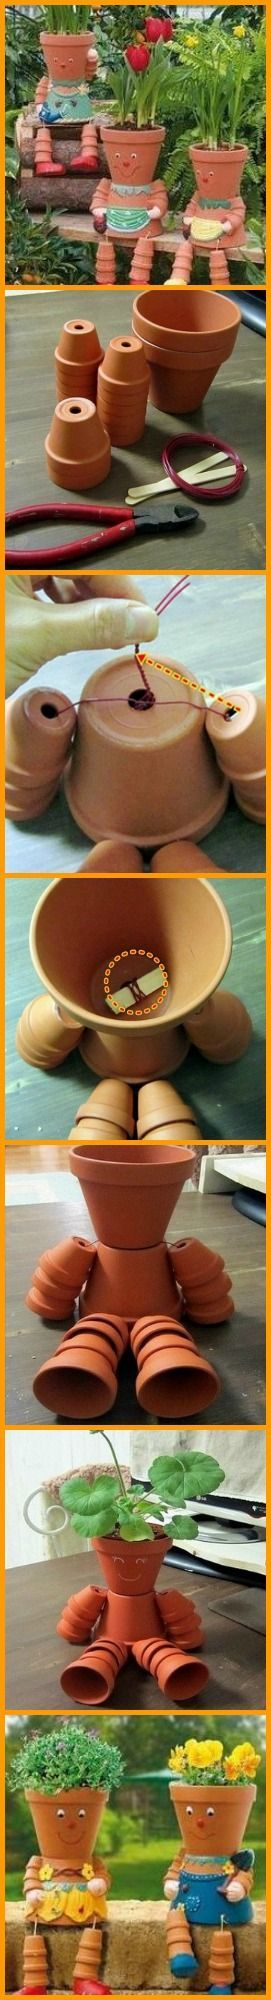 Get the kids interested in gardening by making this DIY clay pot flower people! http://theownerbuildernetwork.co/vs03: